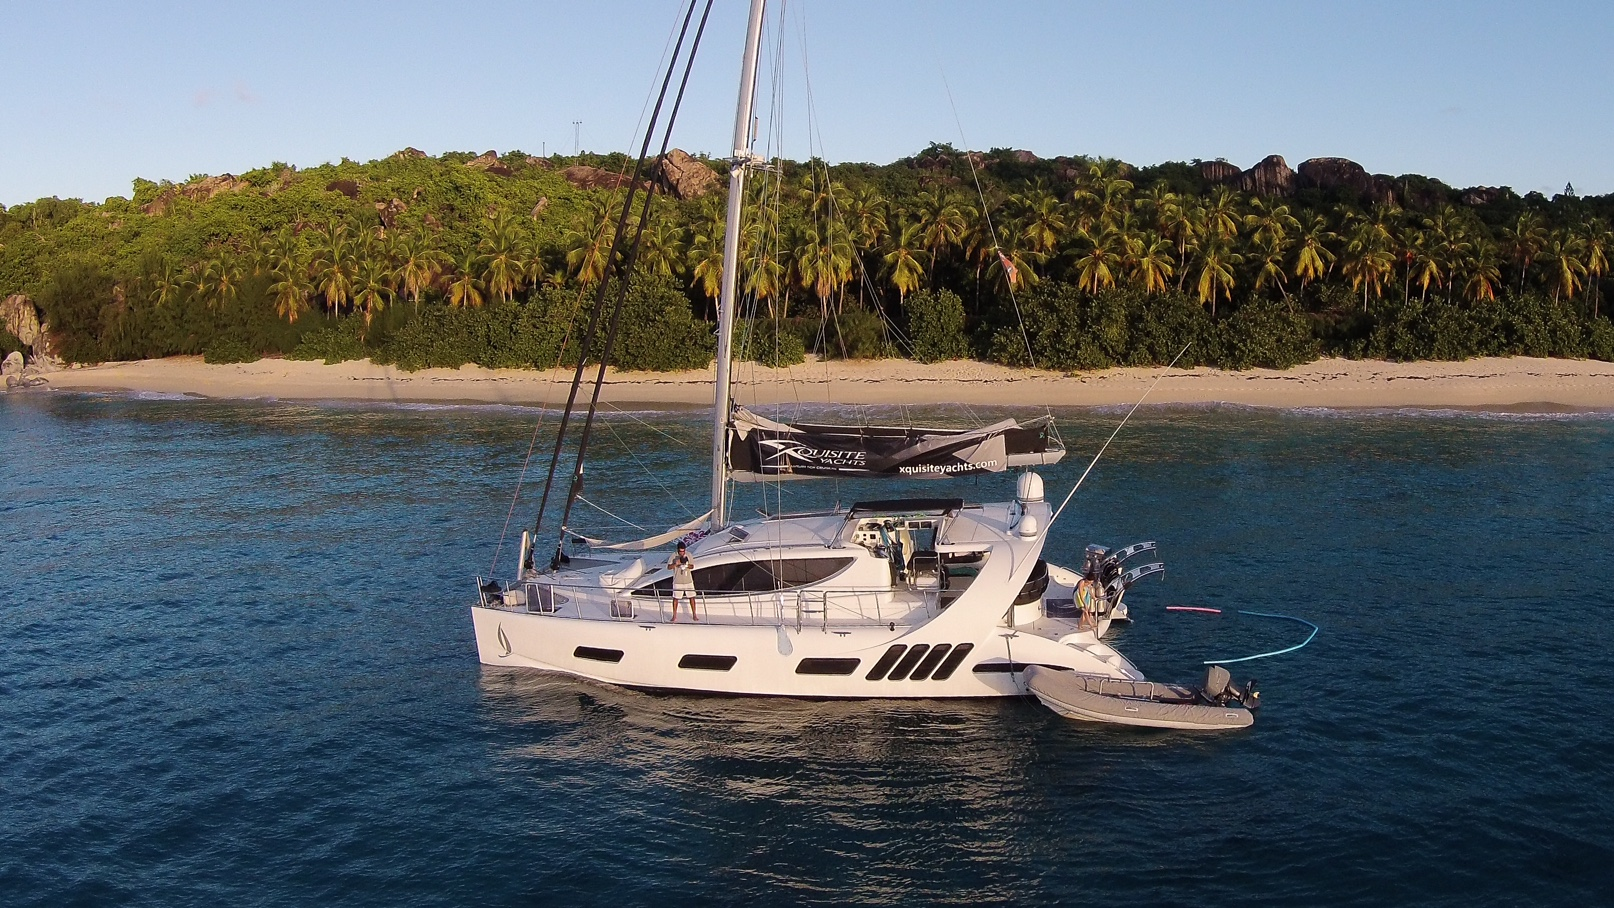 Dive Center For Sale - Luxury catamaran fully equipped for live aborad sail & dive charters